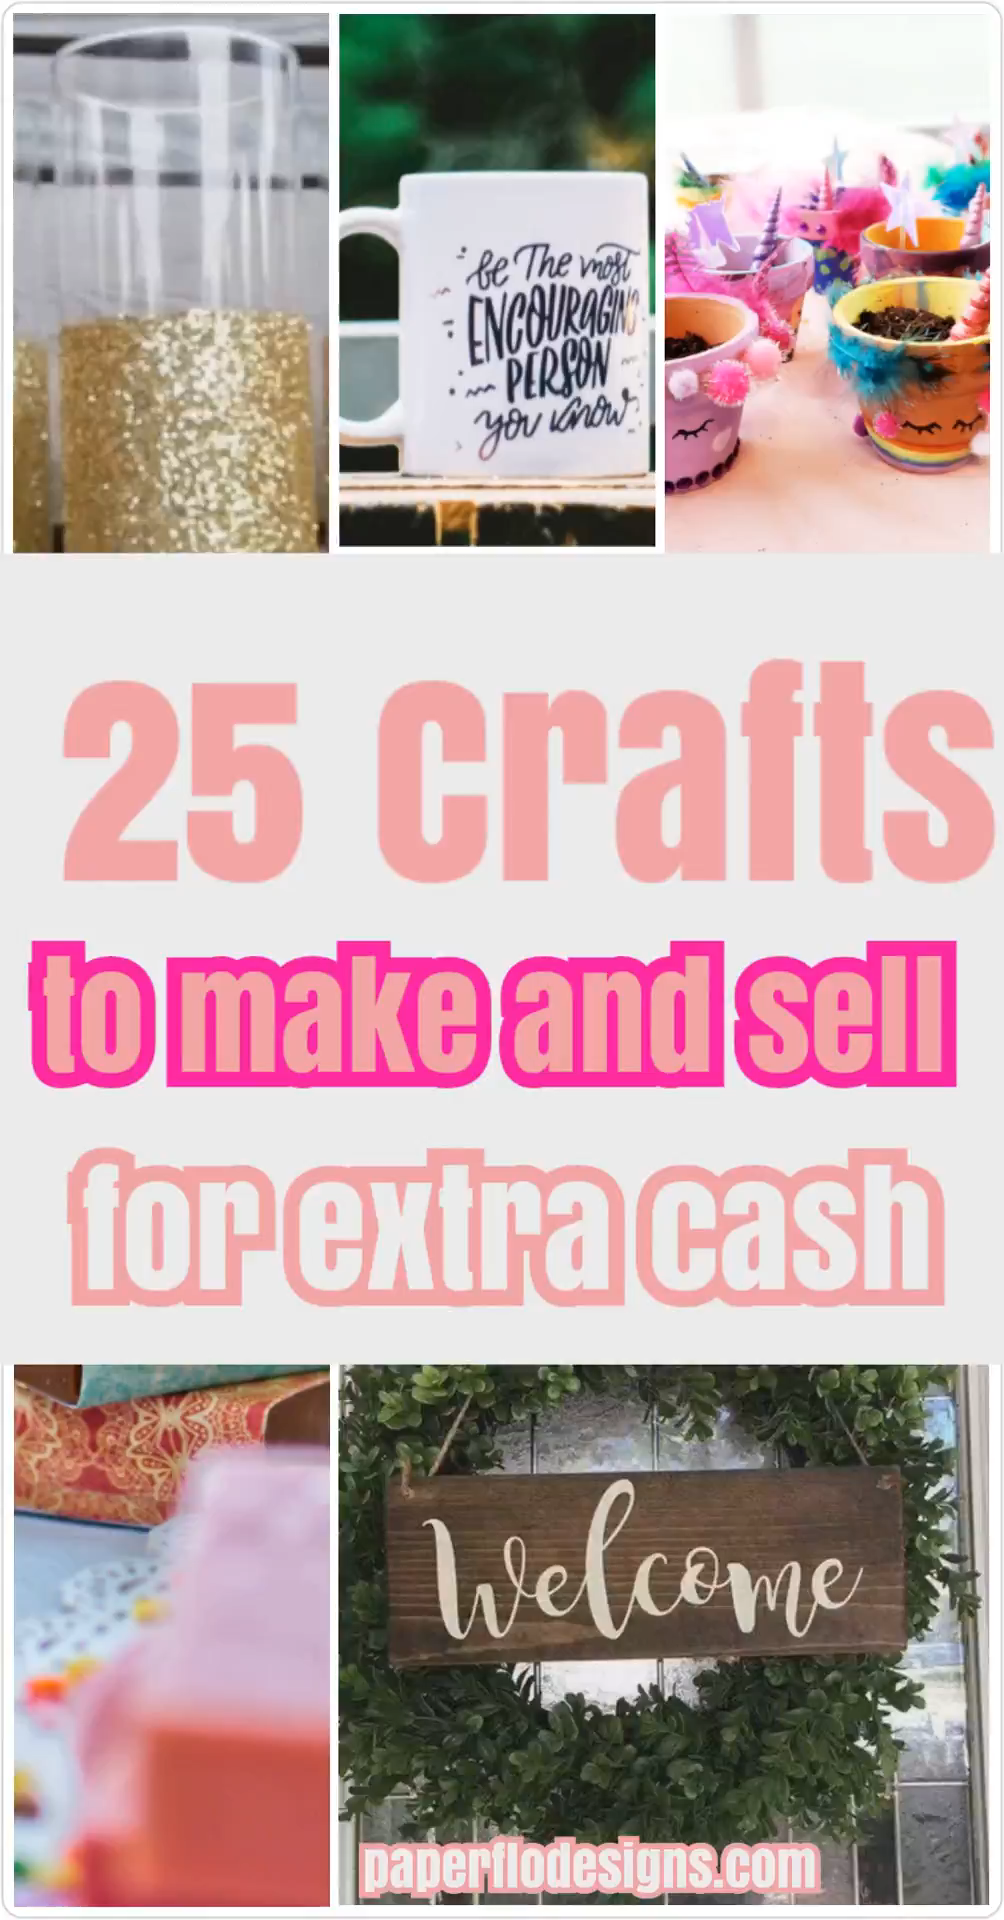 Photo of 25 Crafts to make and sell for extra cash